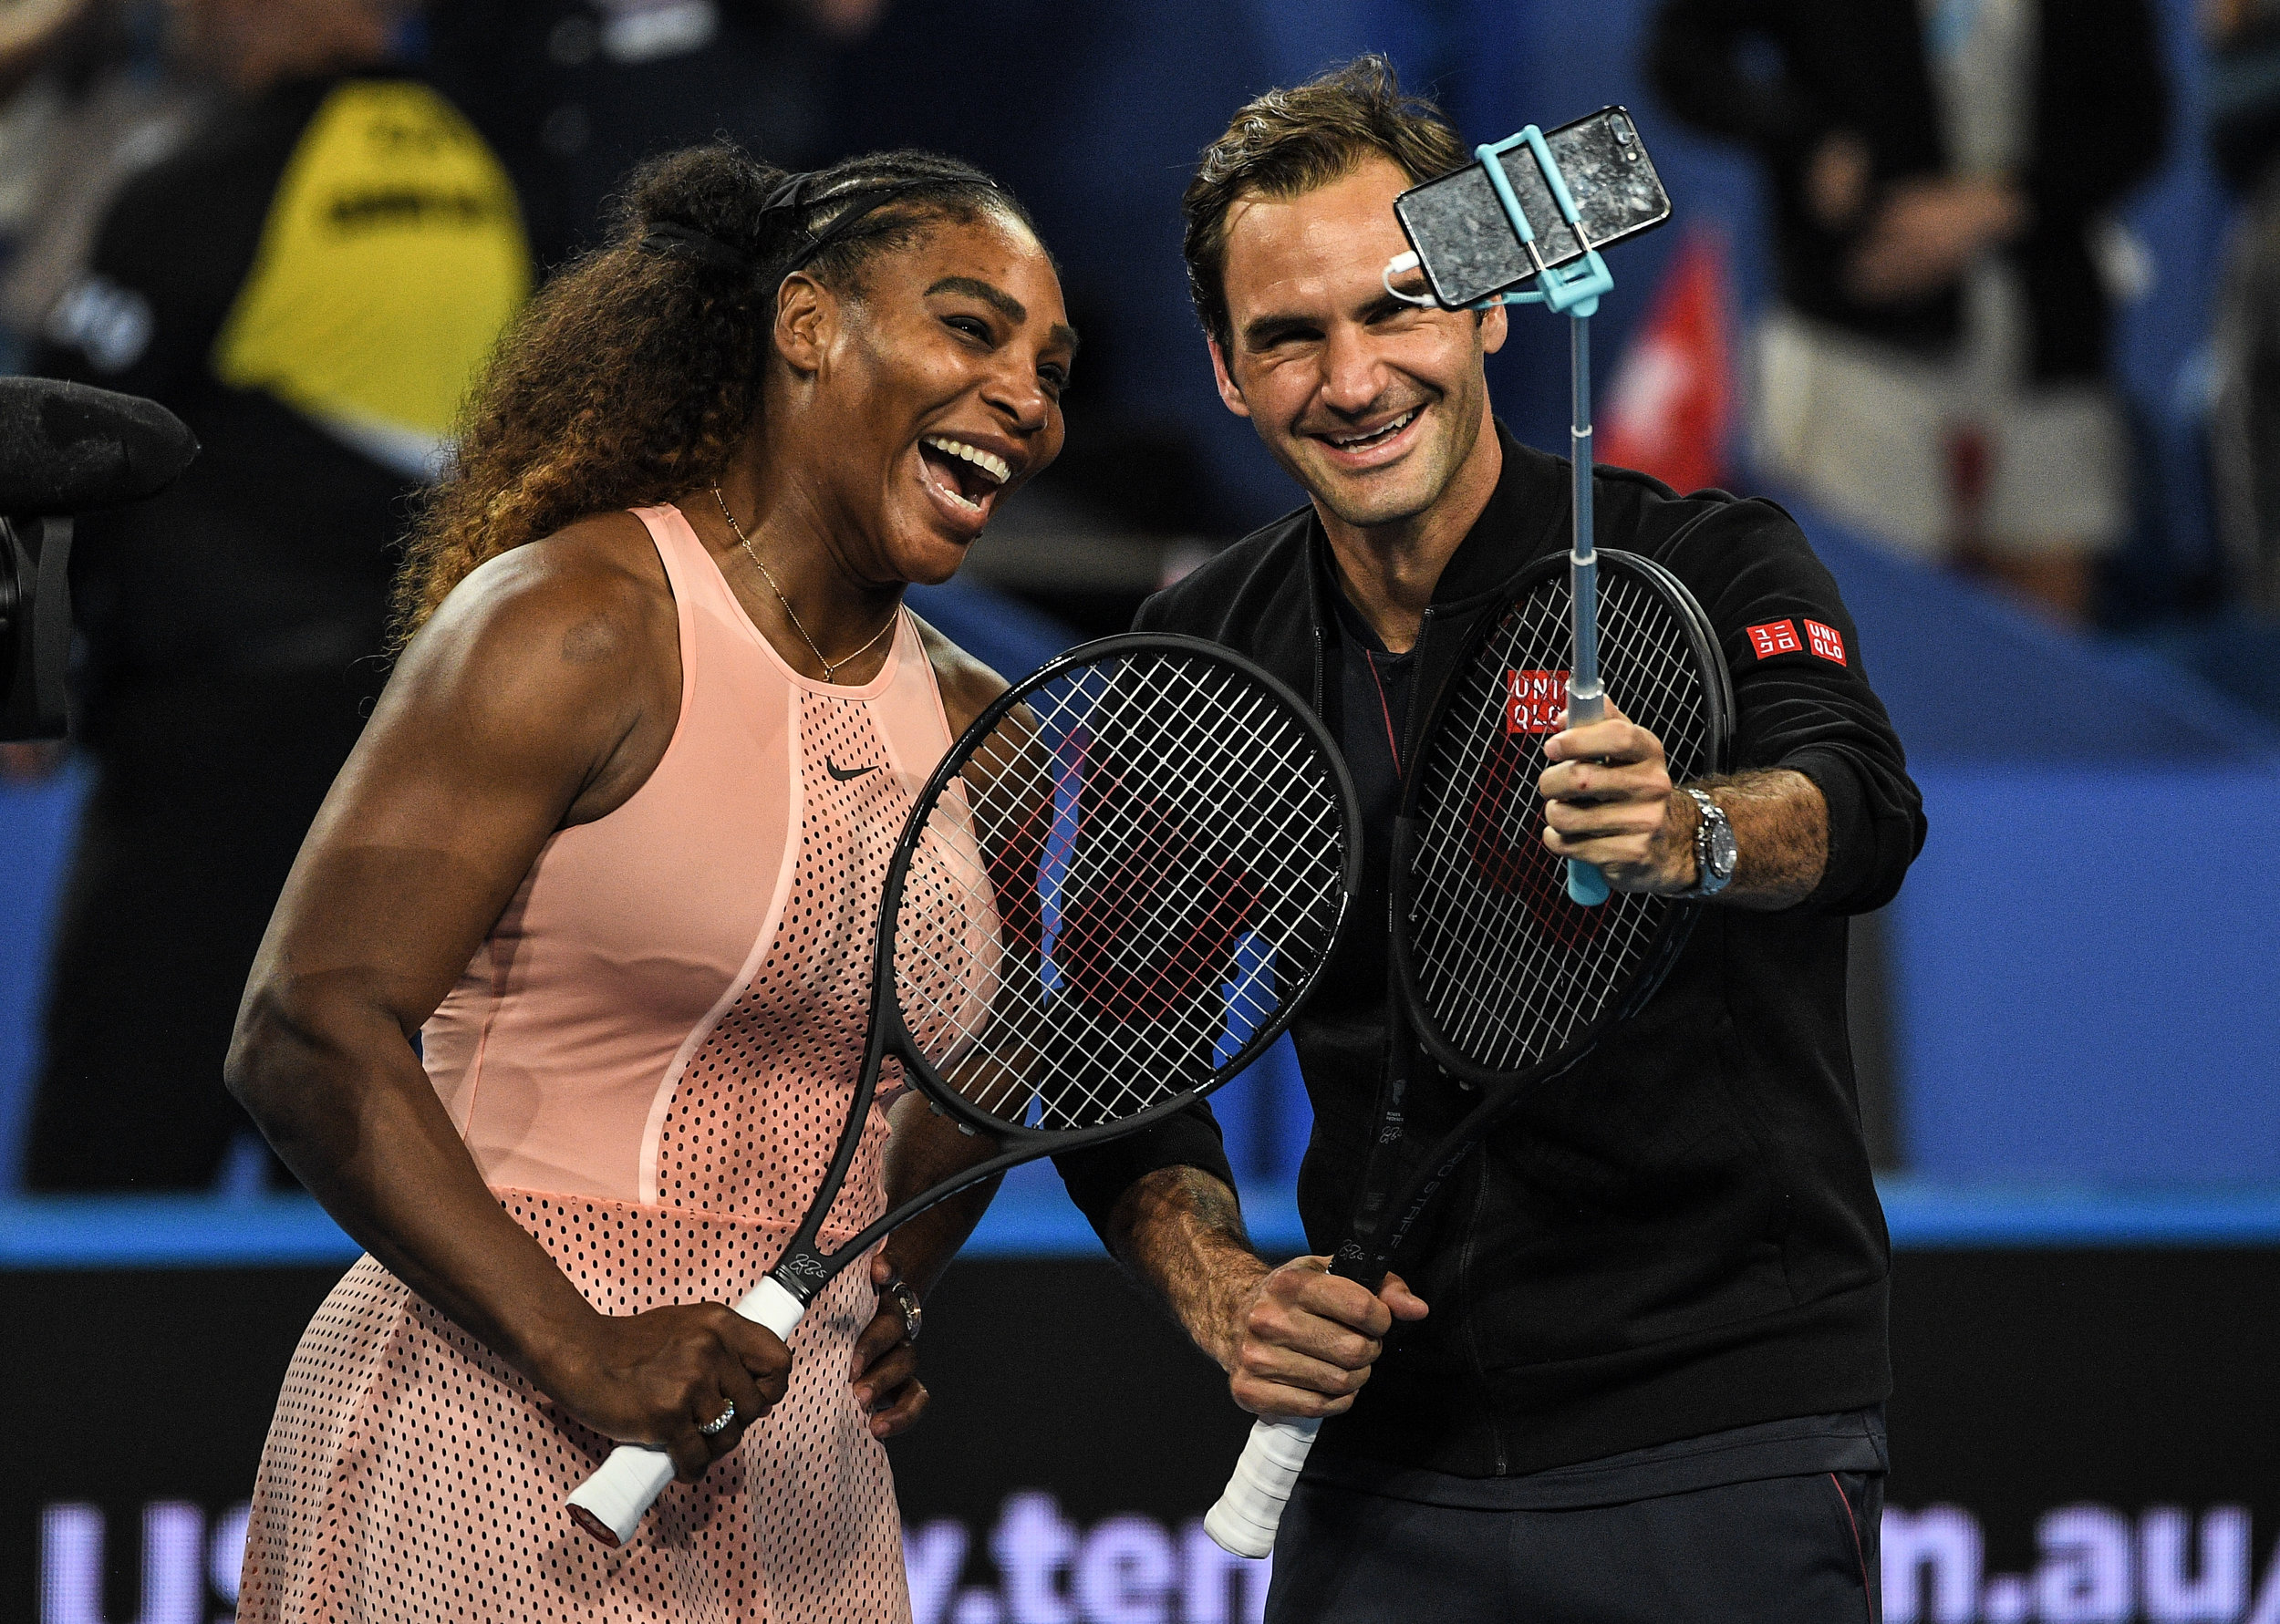 Roger Federer and Serena Williams take a selfie after their Mixed Doubles match